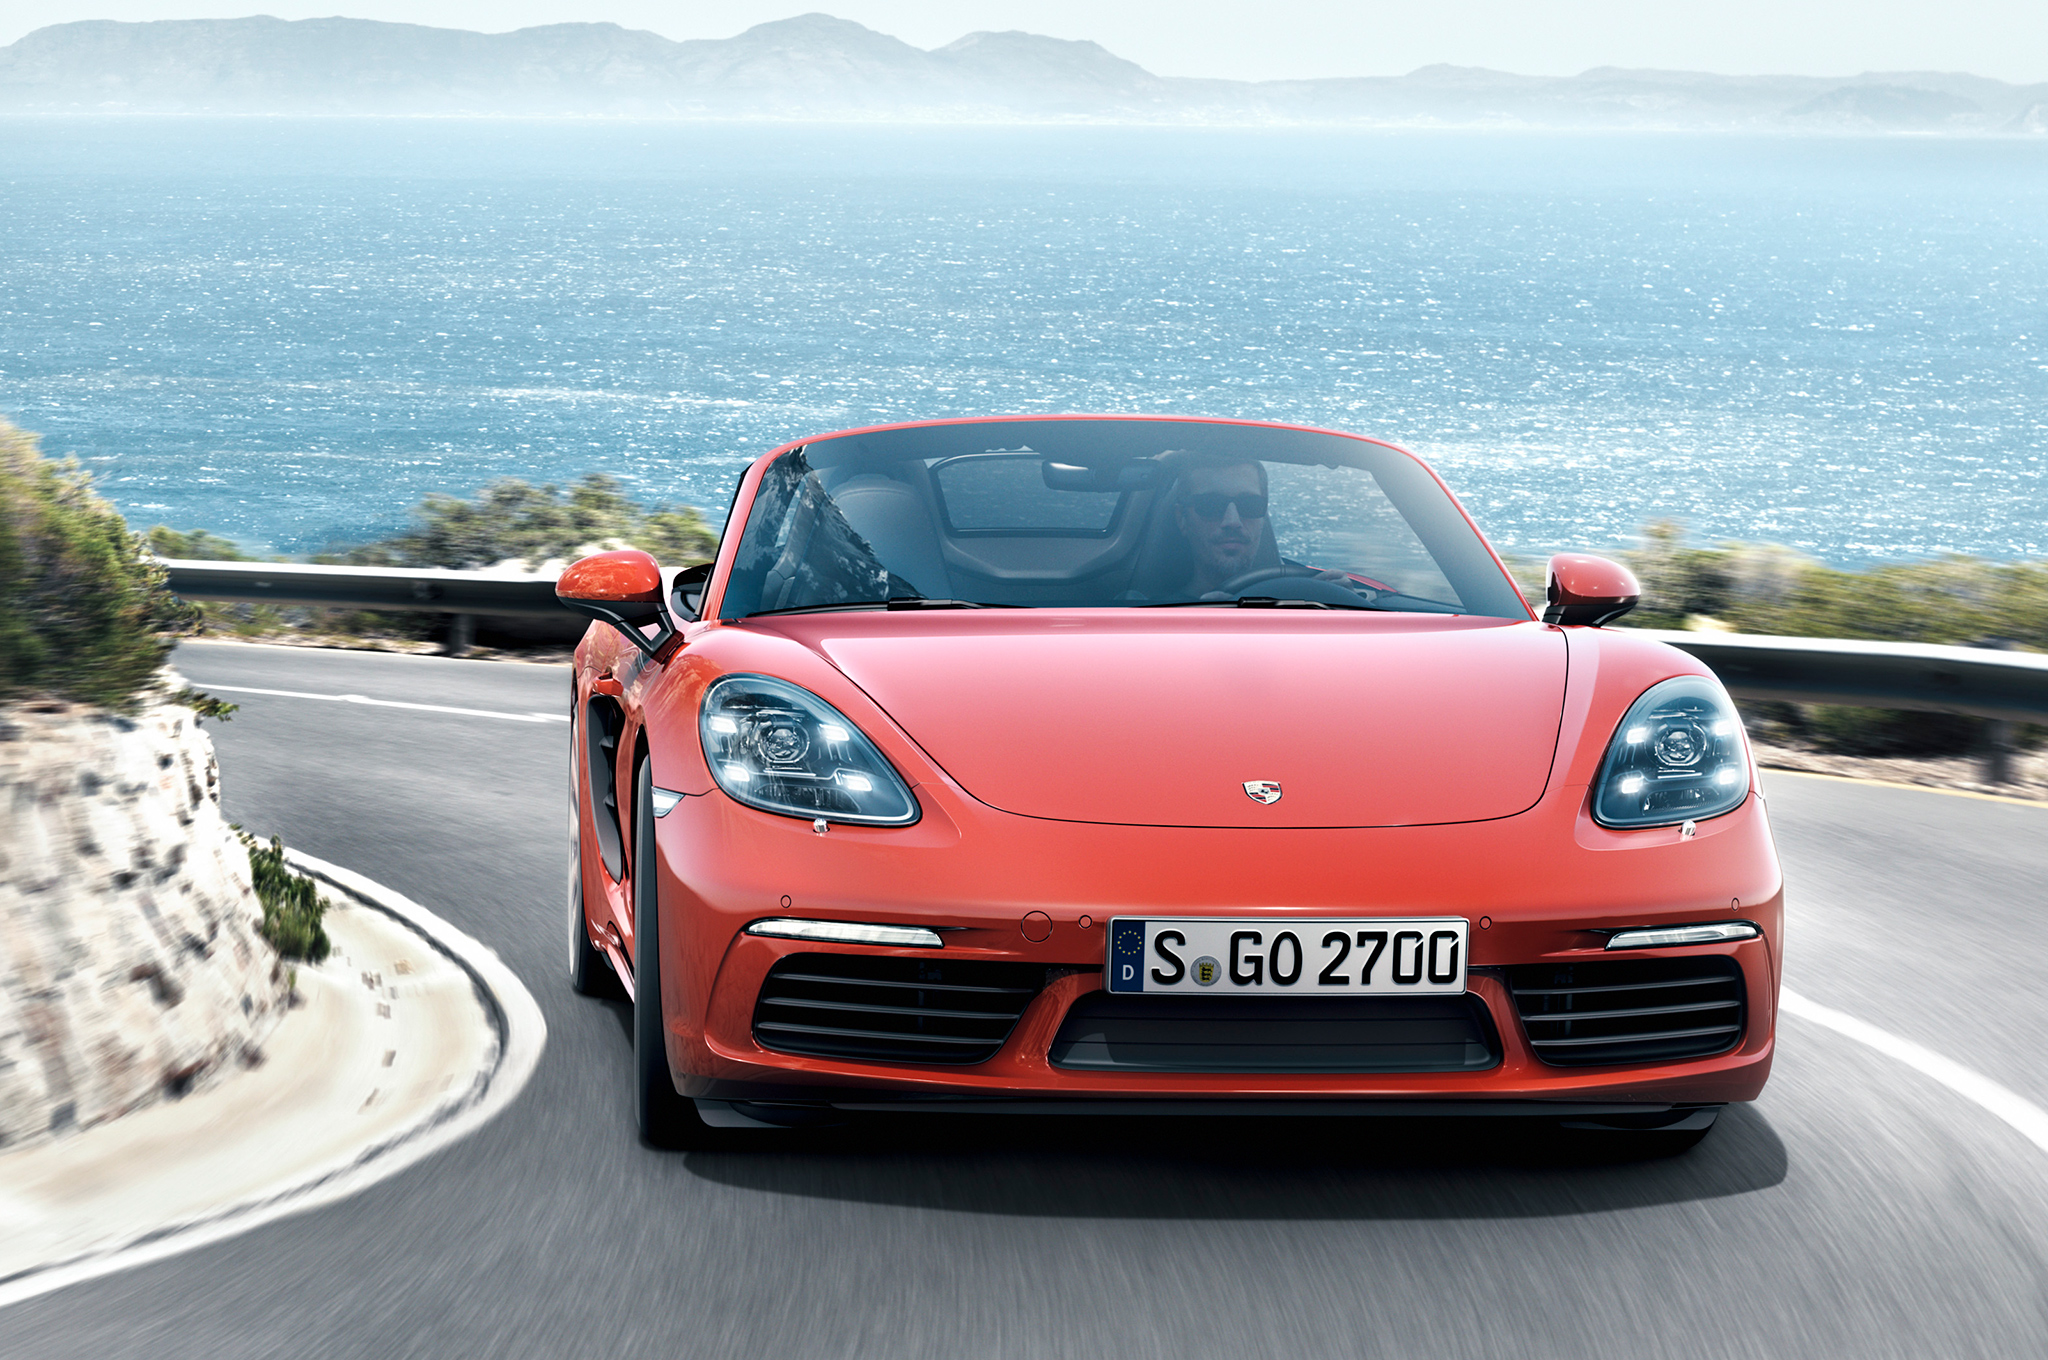 2017 Porsche Boxster photo - 1